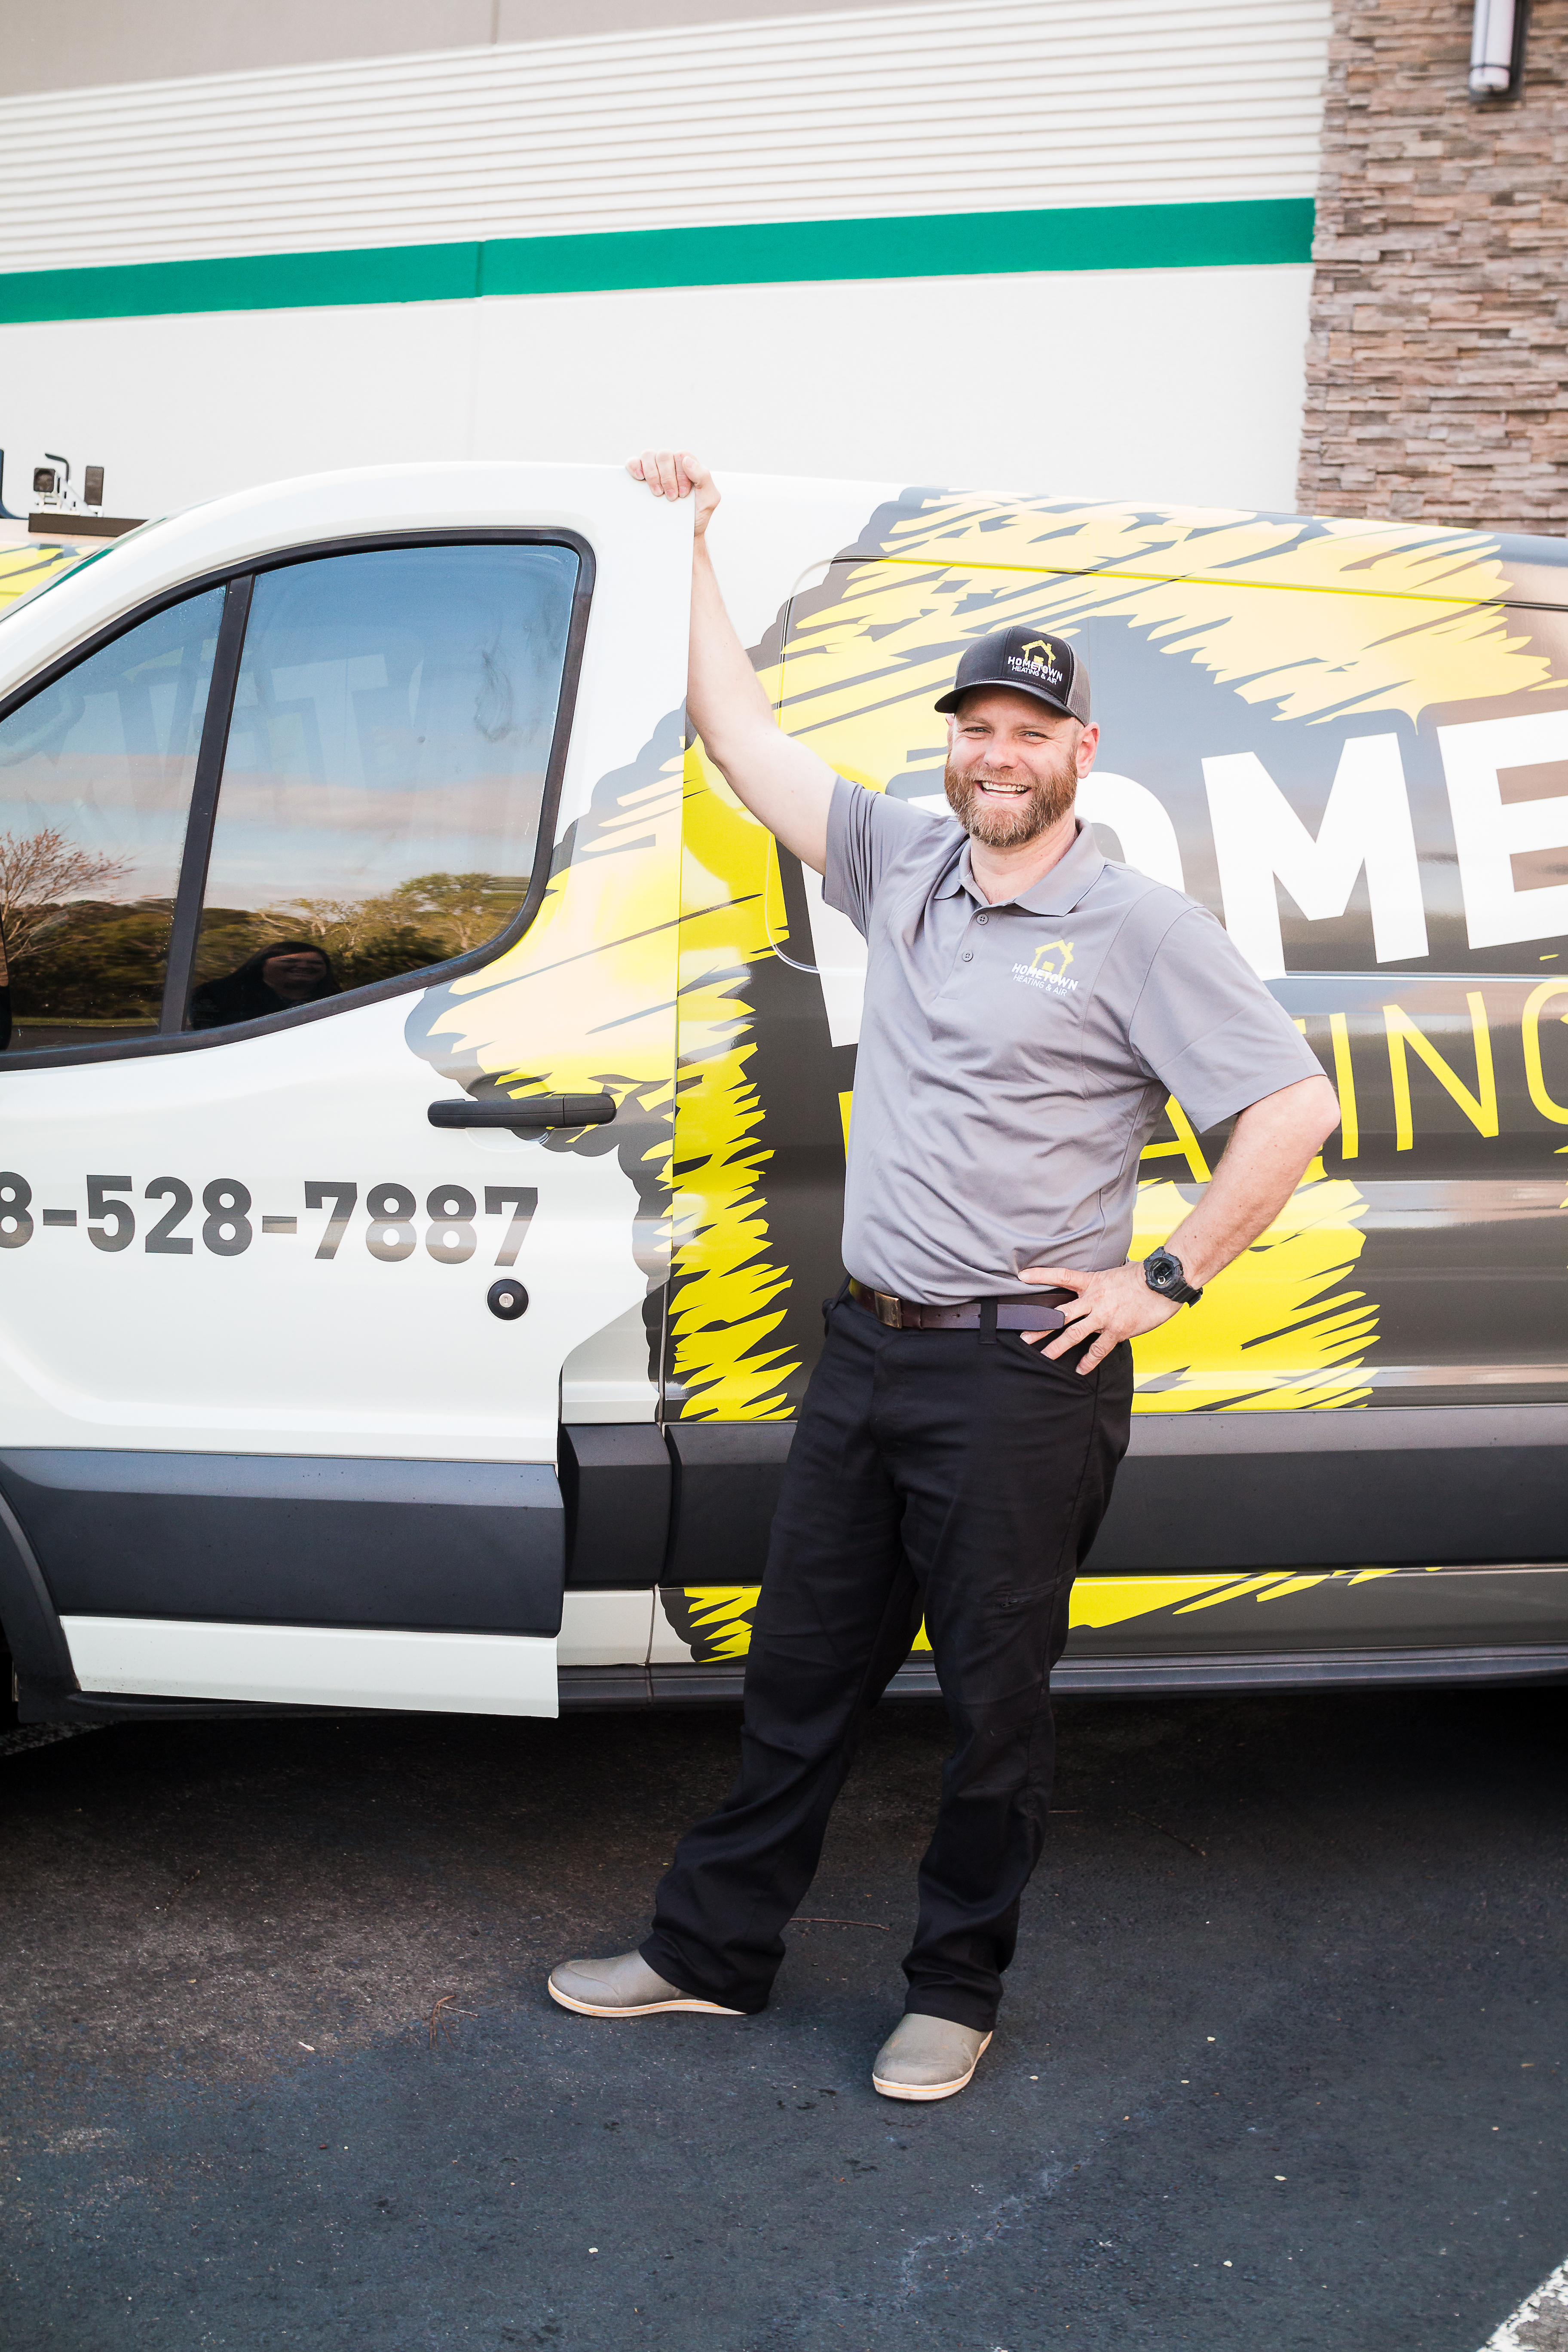 Best Air Conditioning Maintenance Company